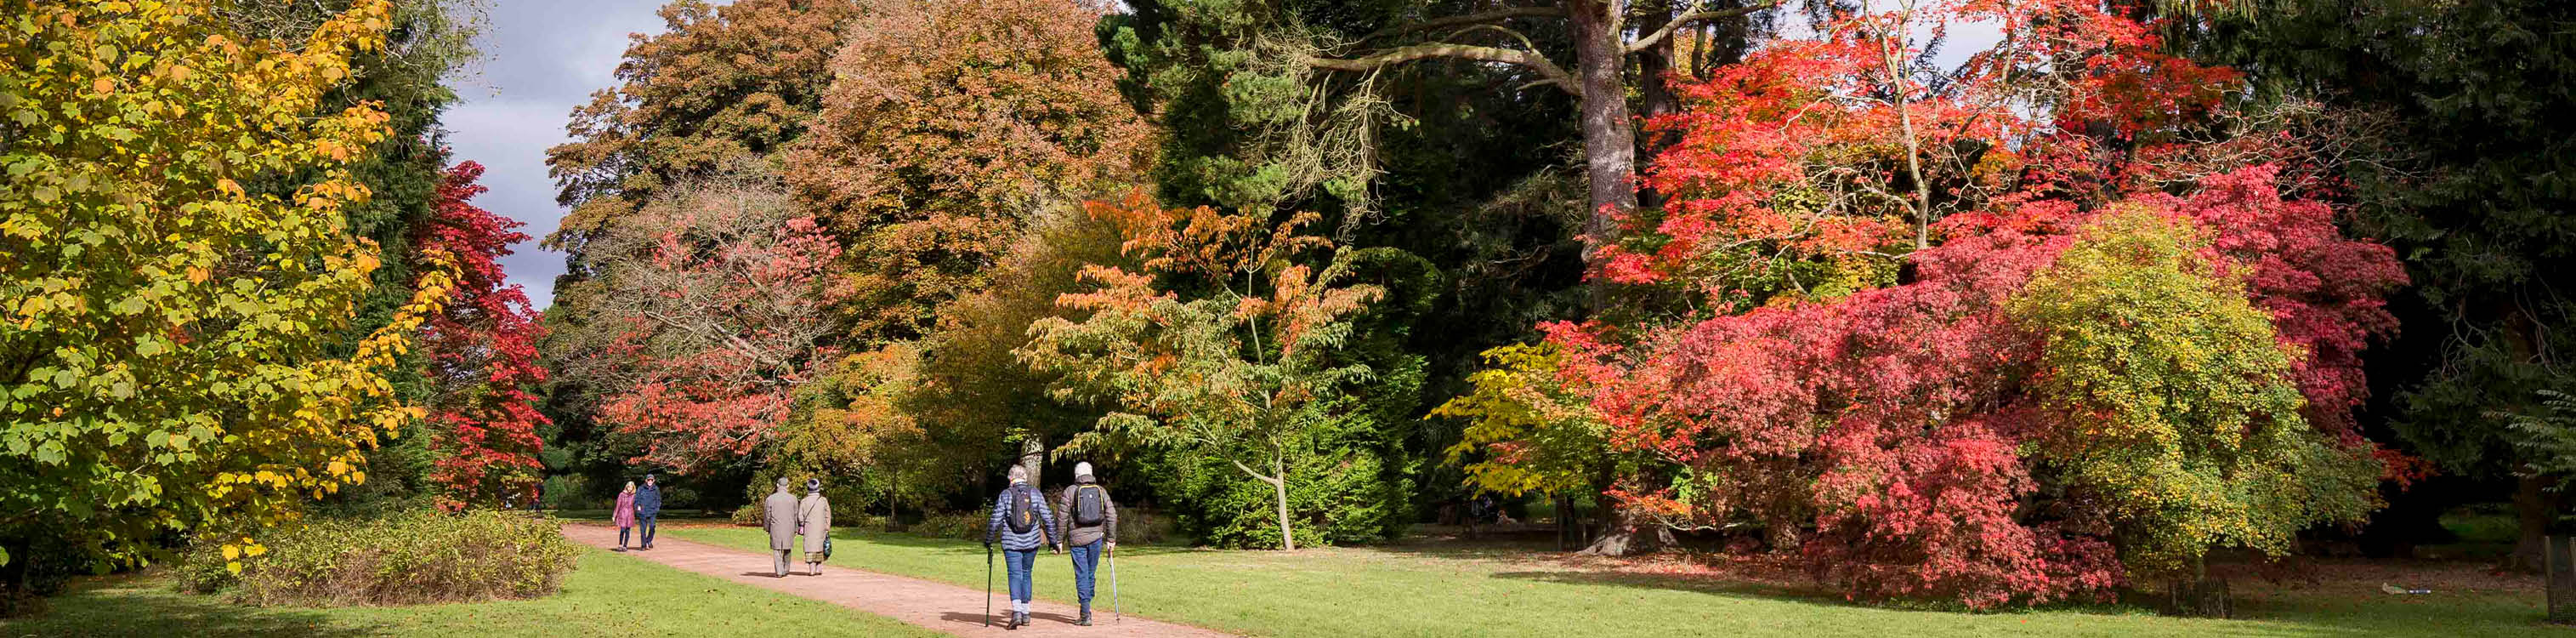 Three couples walking along a path lined with autumn trees